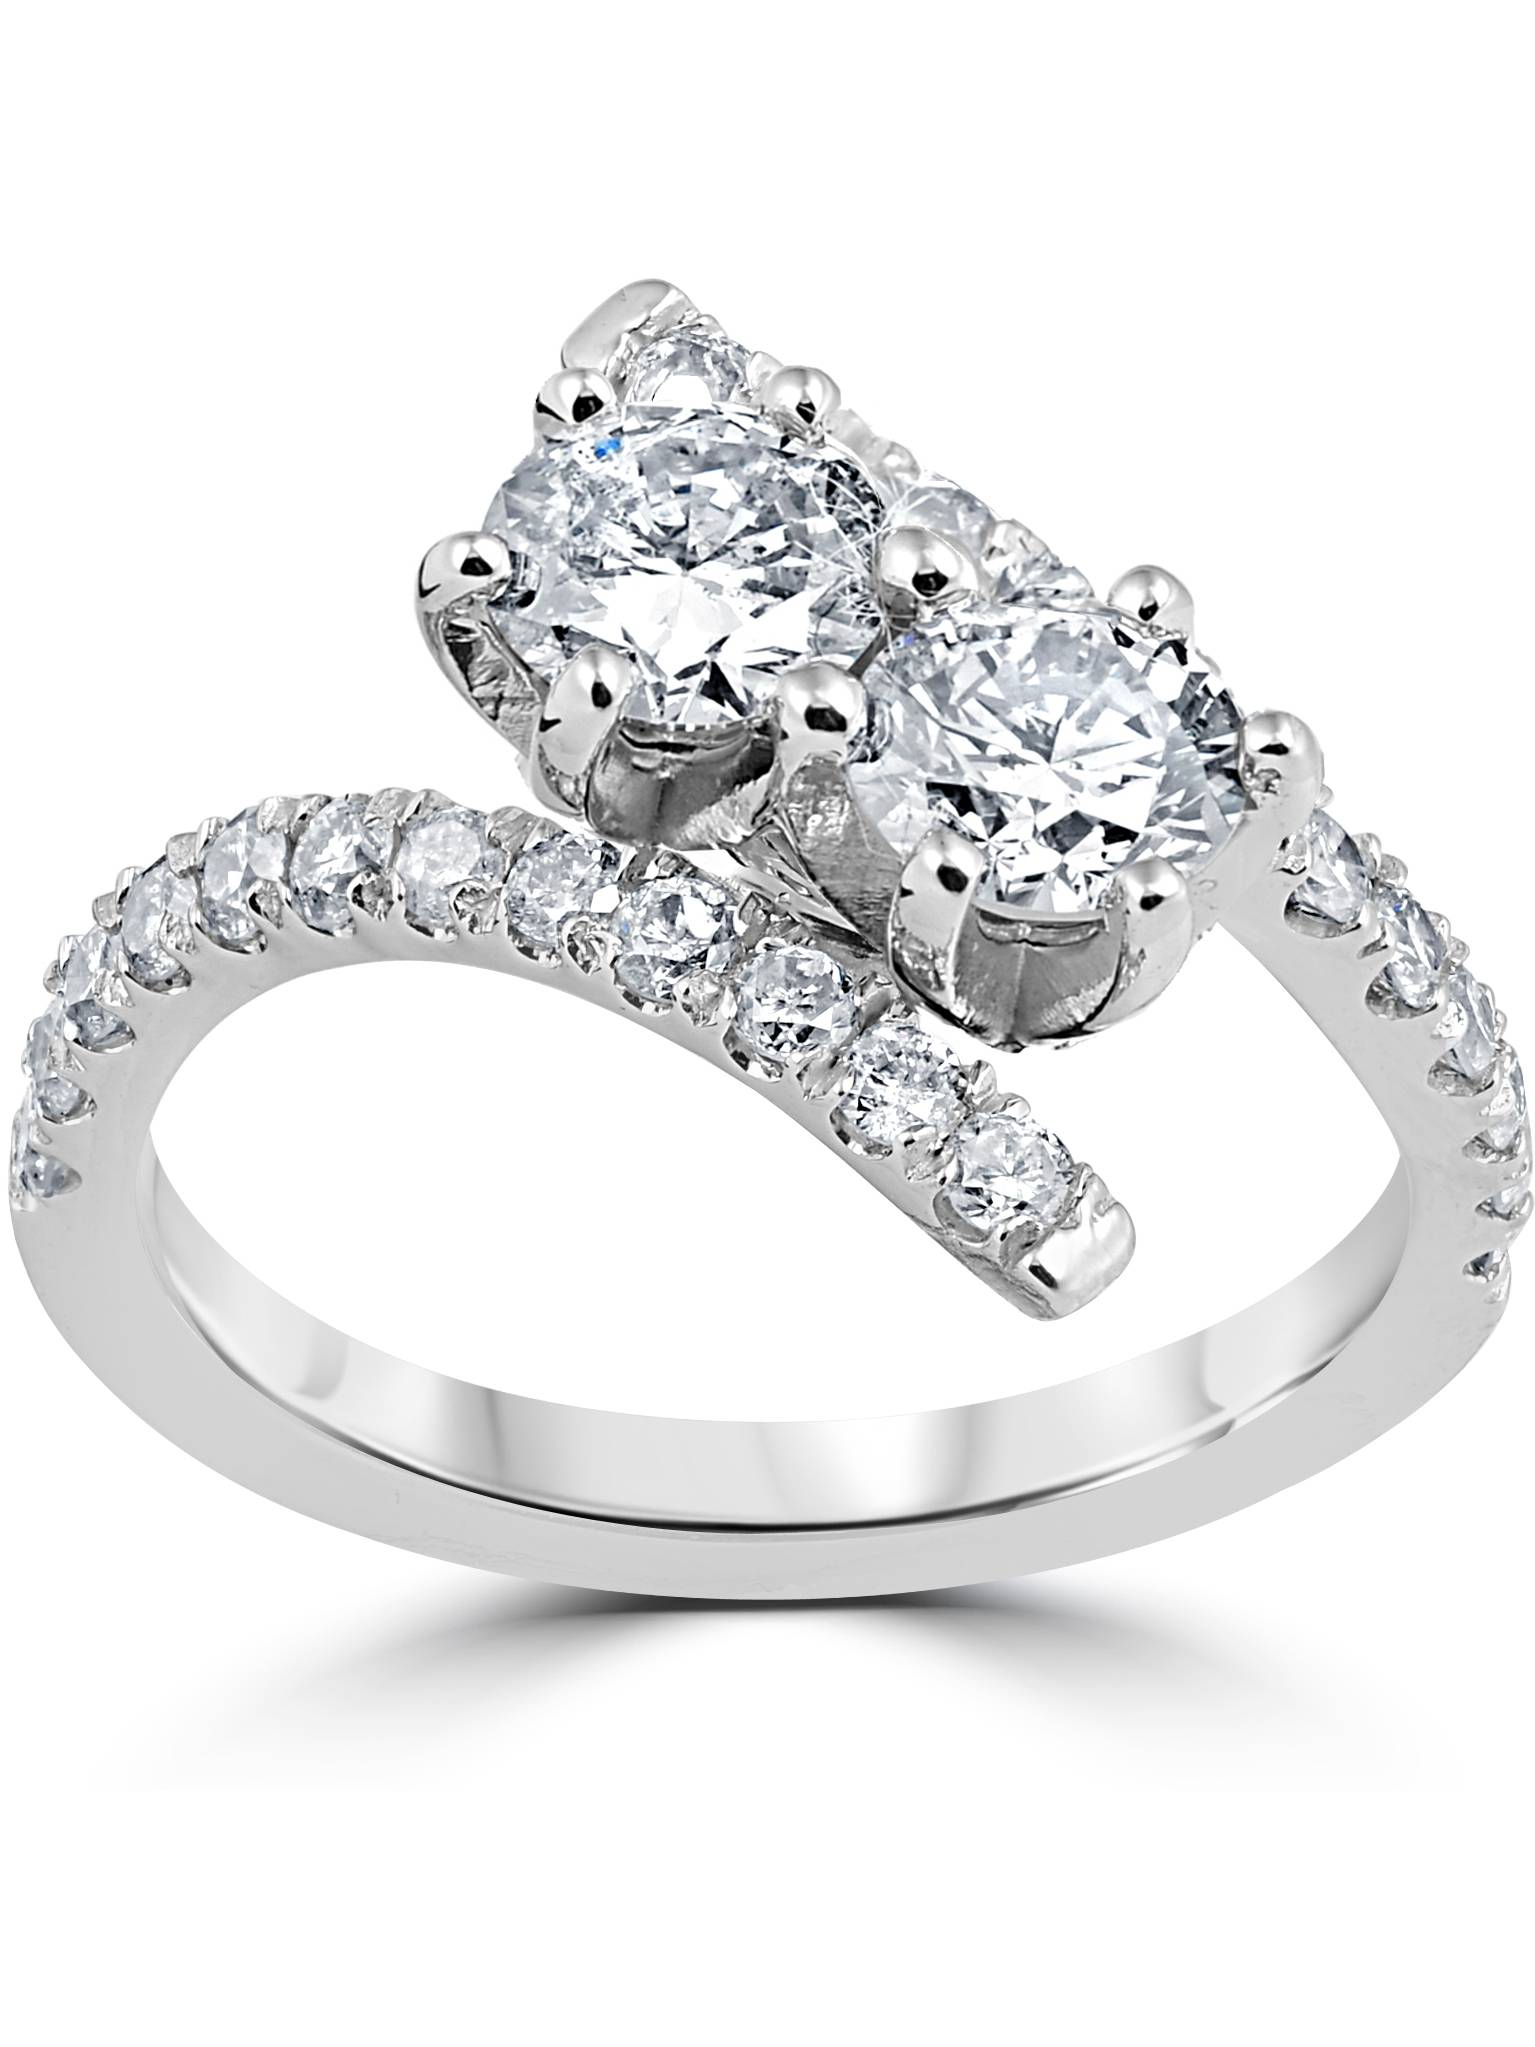 1 cttw Diamond 2 Stone Forever Us Engagement Anniversary Ring 14k White Gold by Pompeii3